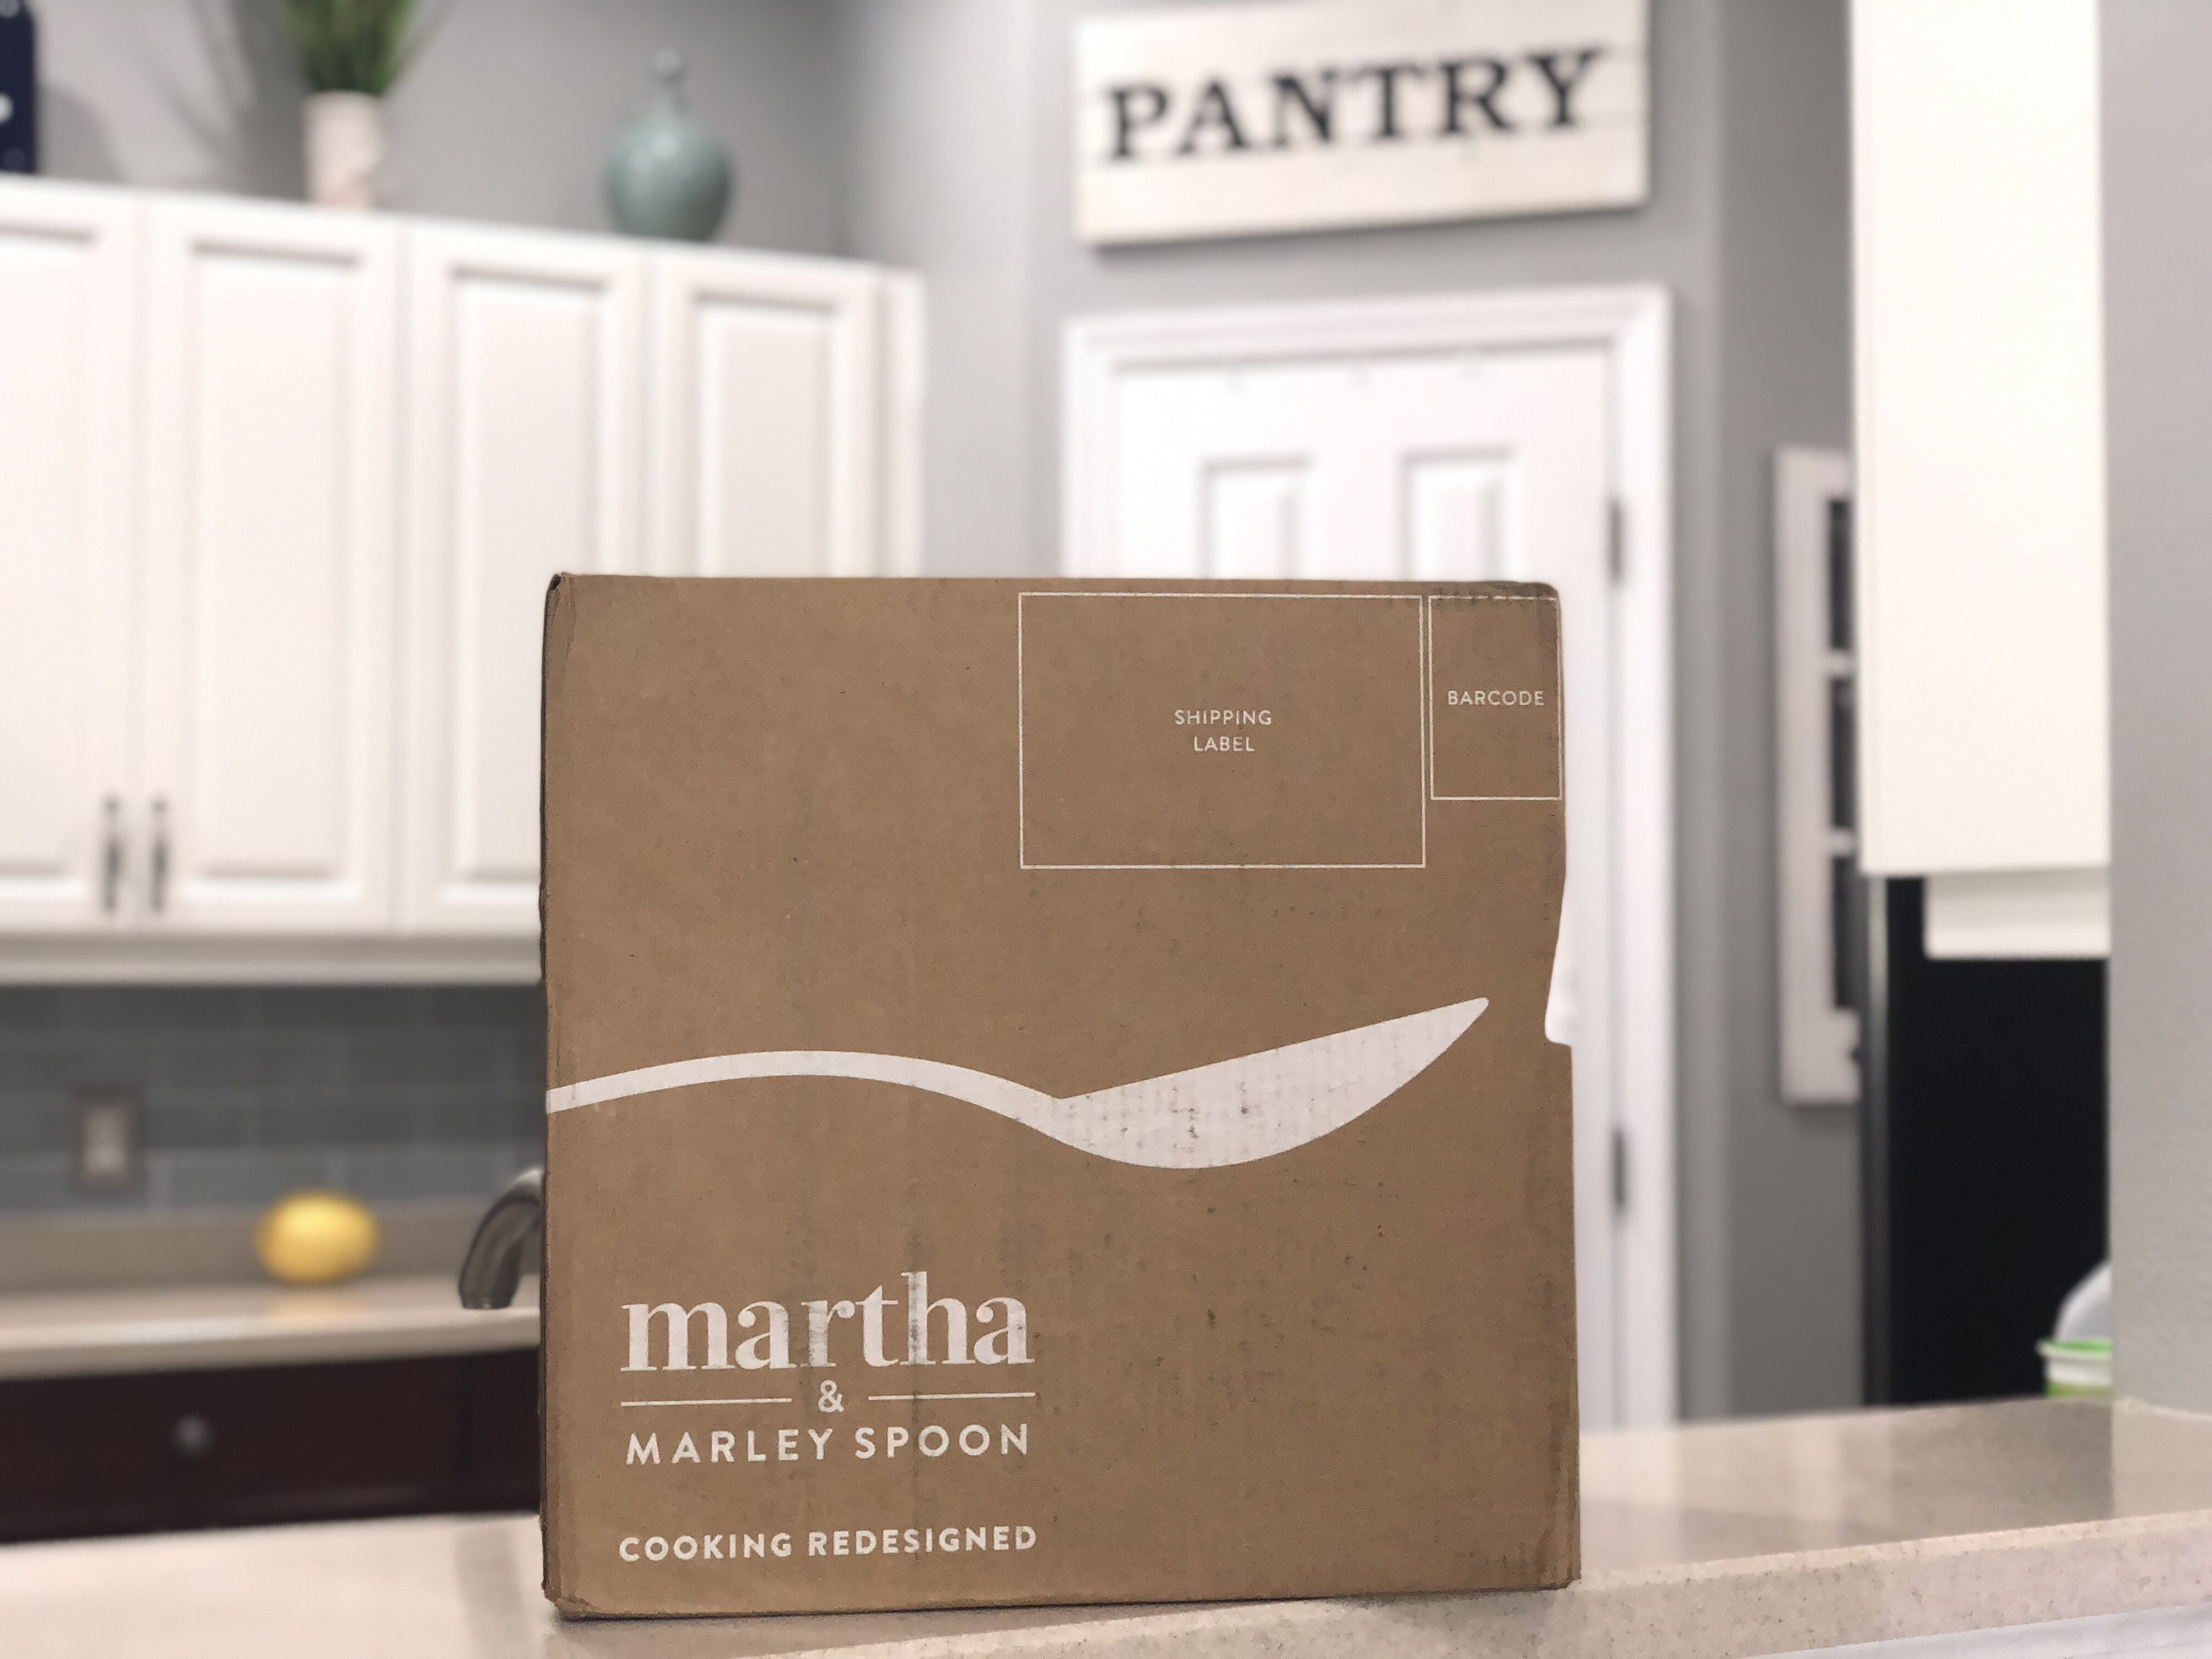 deal martha & marley spoon meals – the box on a counter